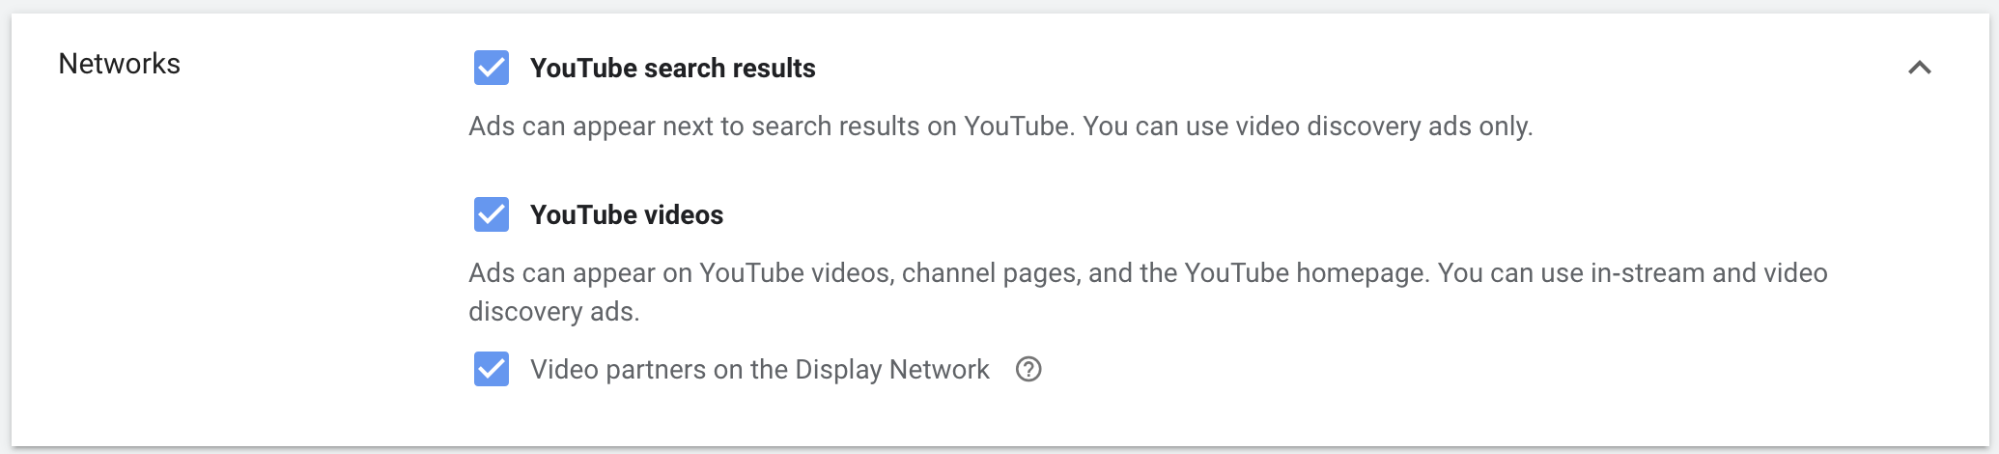 YouTube video ads — Networks